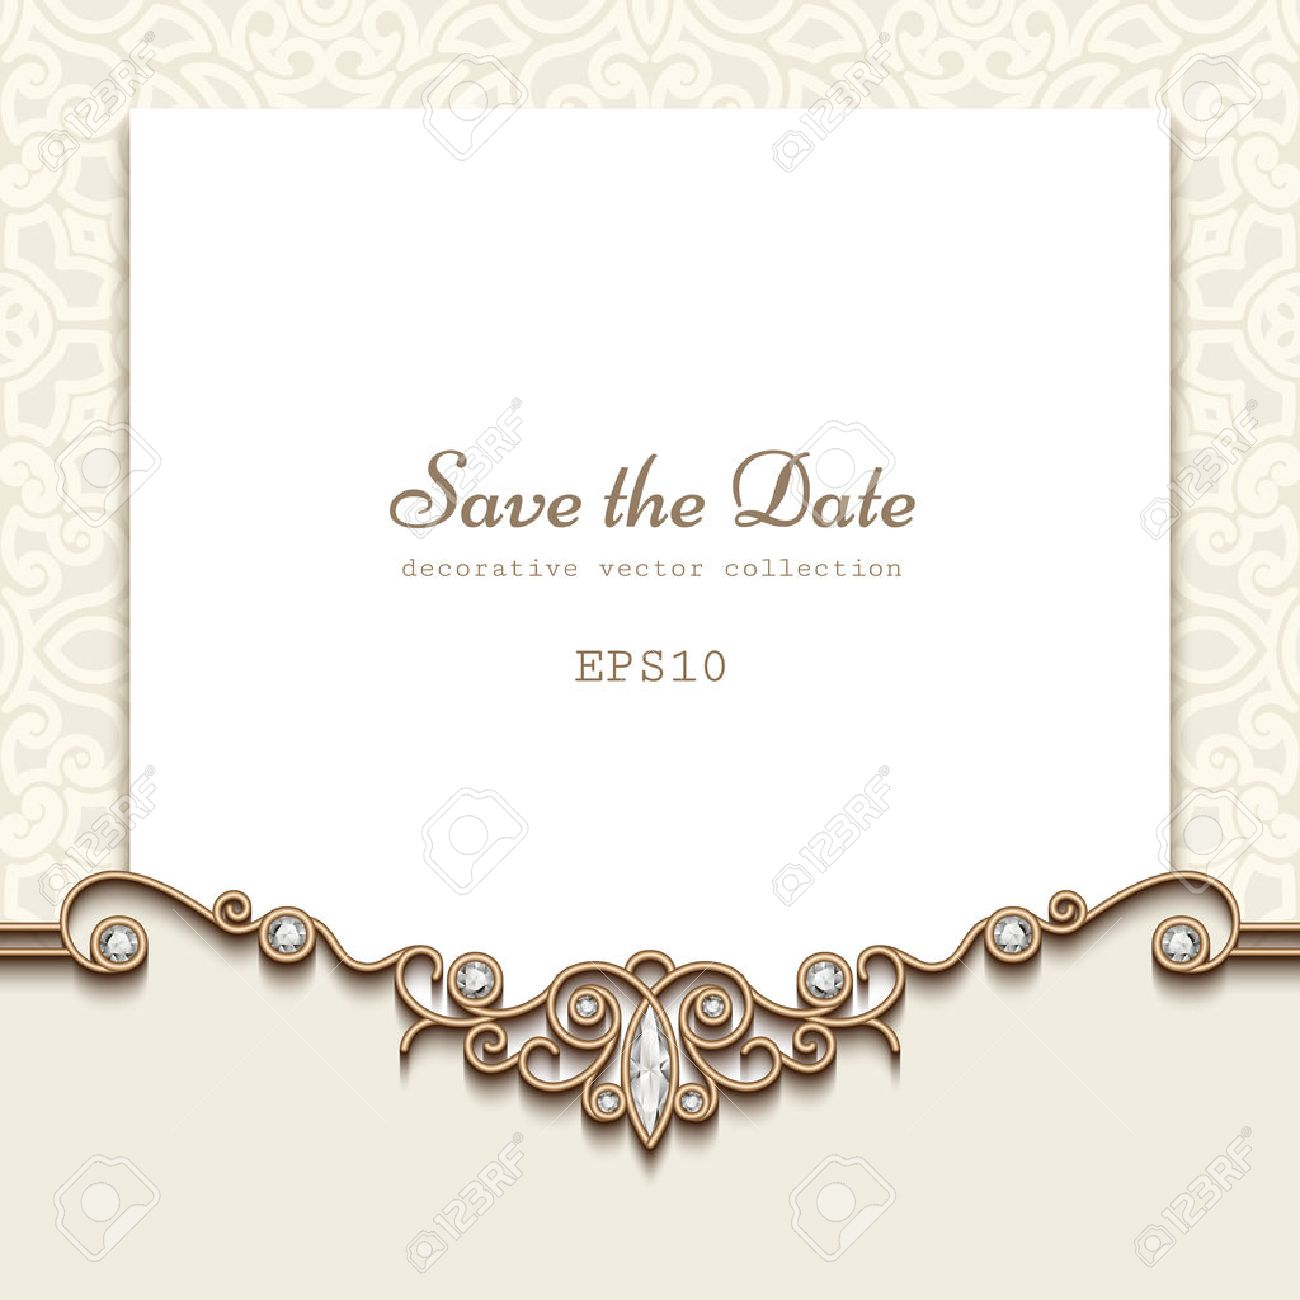 Elegant save the date card with jewelry diamond decoration vintage elegant save the date card with jewelry diamond decoration vintage wedding invitation or announcement template stopboris Choice Image